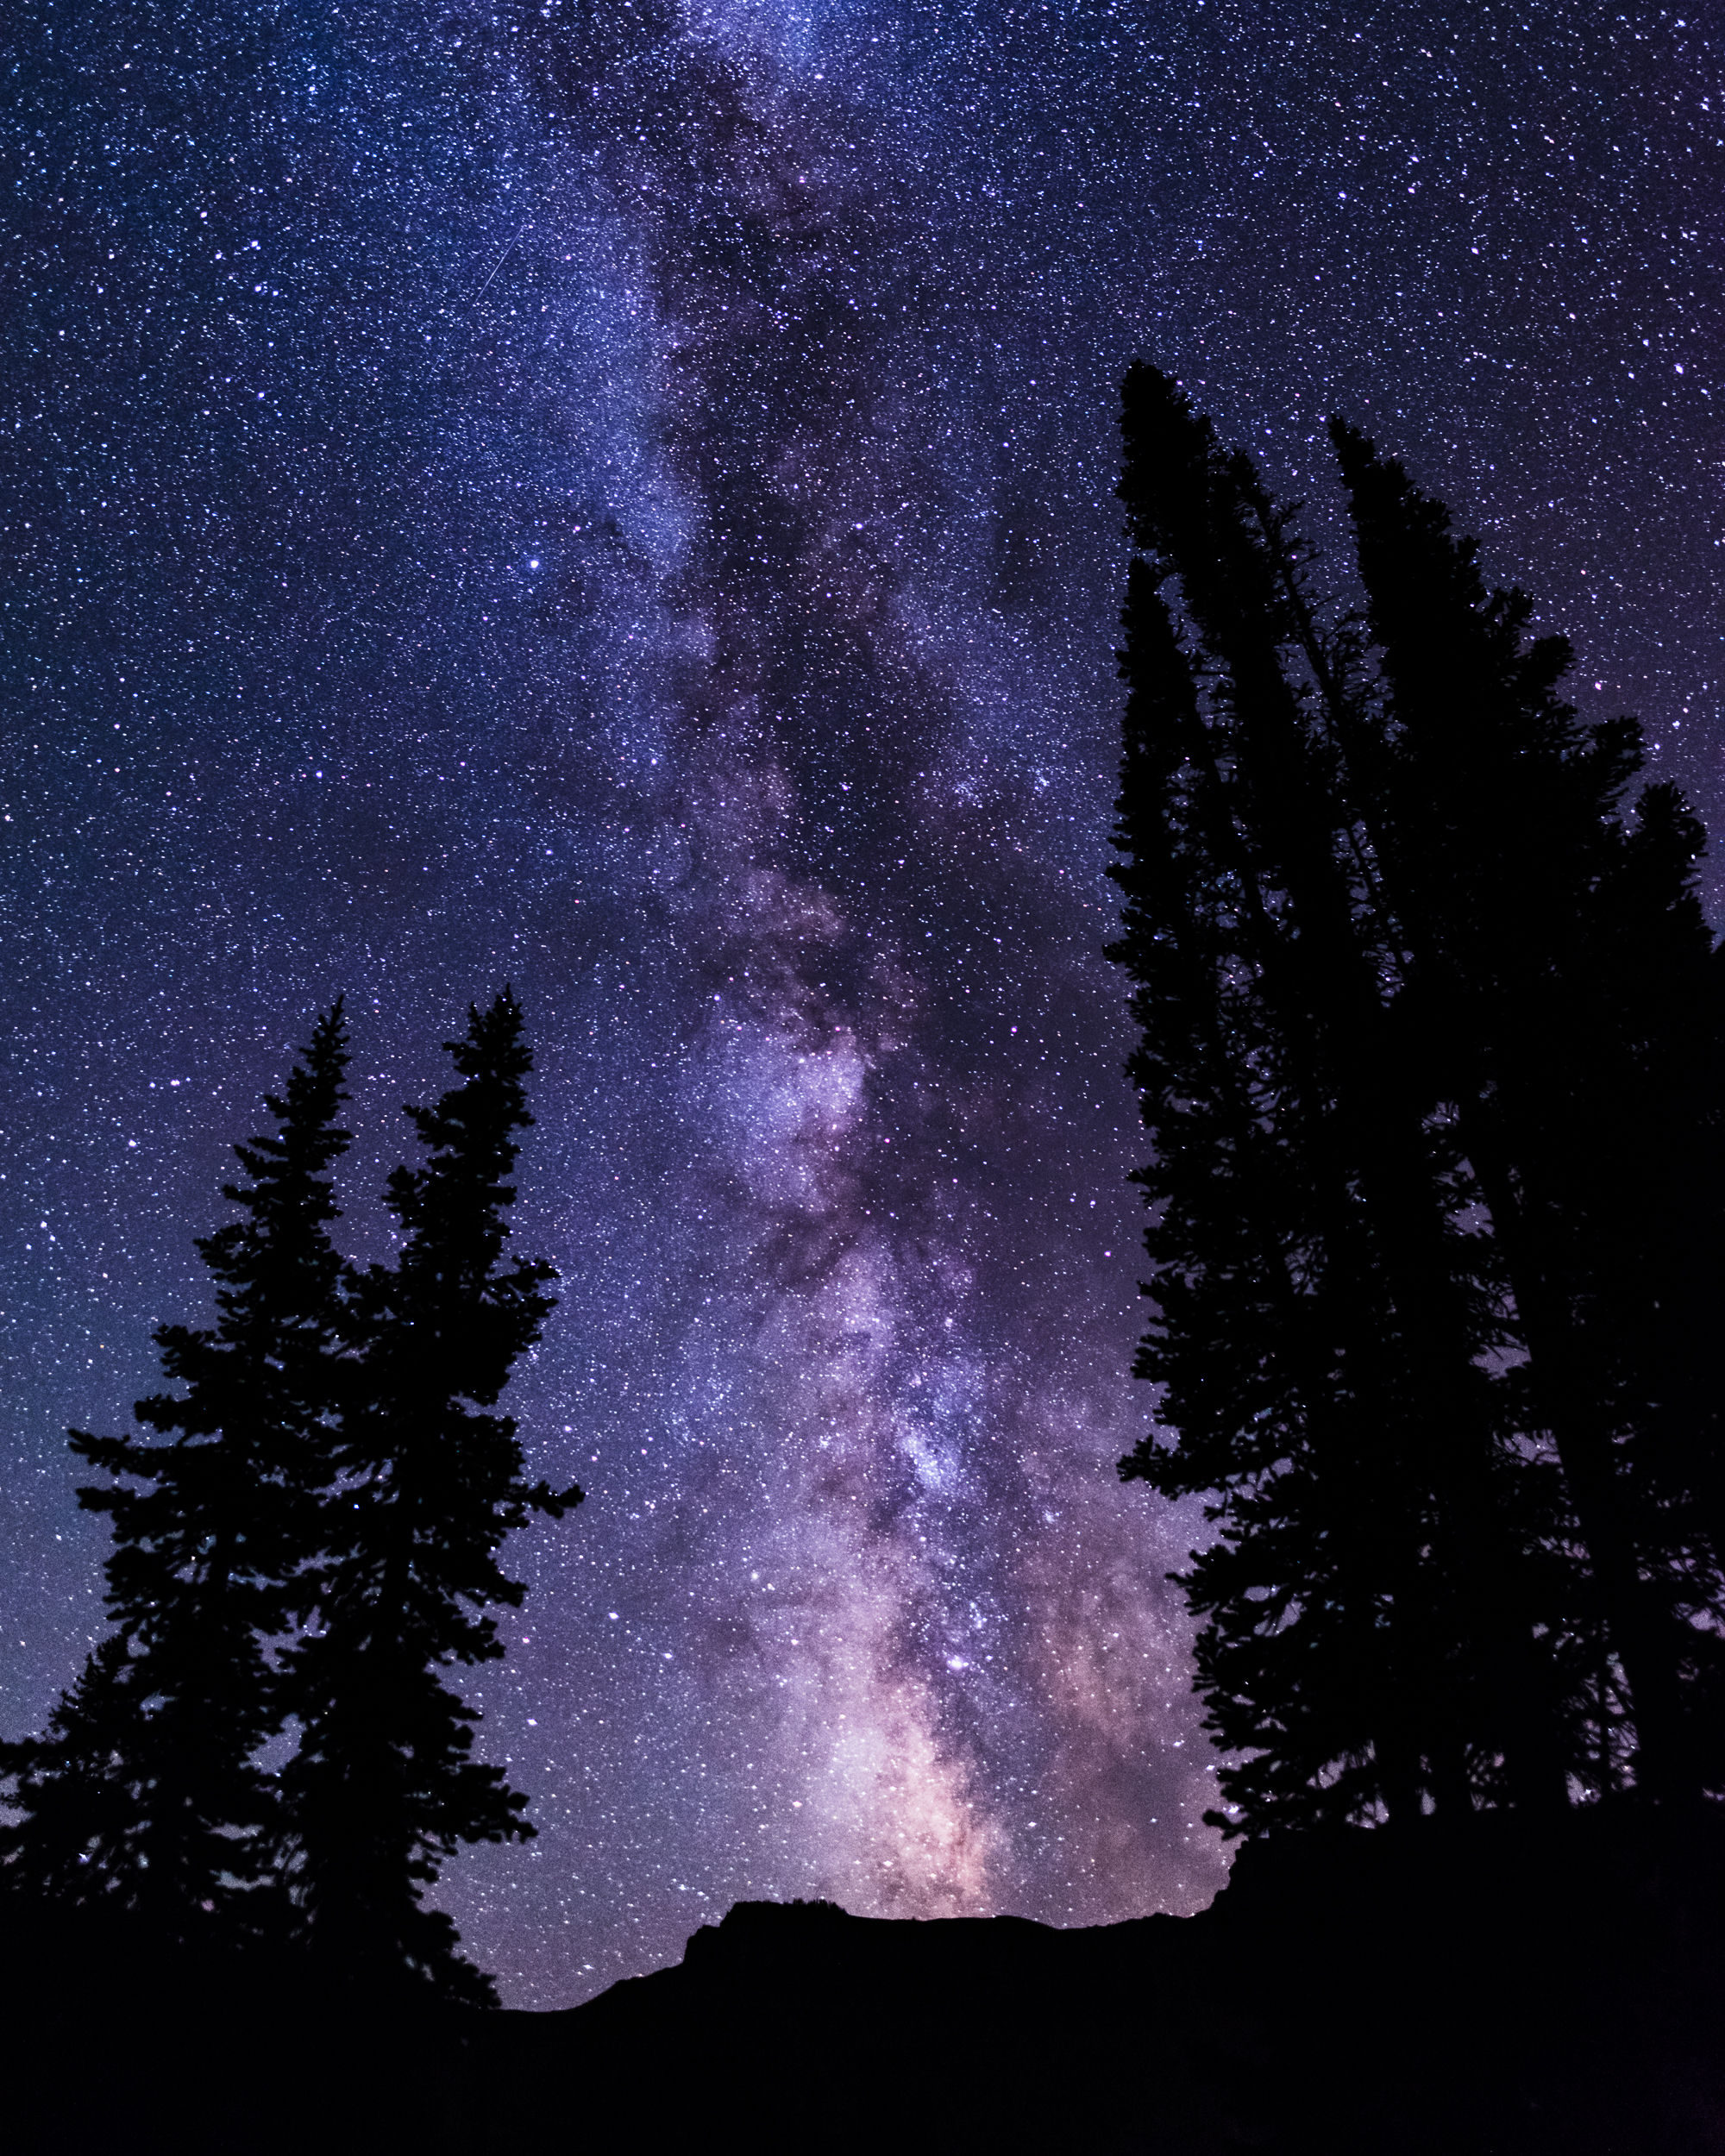 Grand-Teton-National-Park-Alaska-Basin-Milky-Way-Galaxy-Steve-Aliberti-2104.jpg